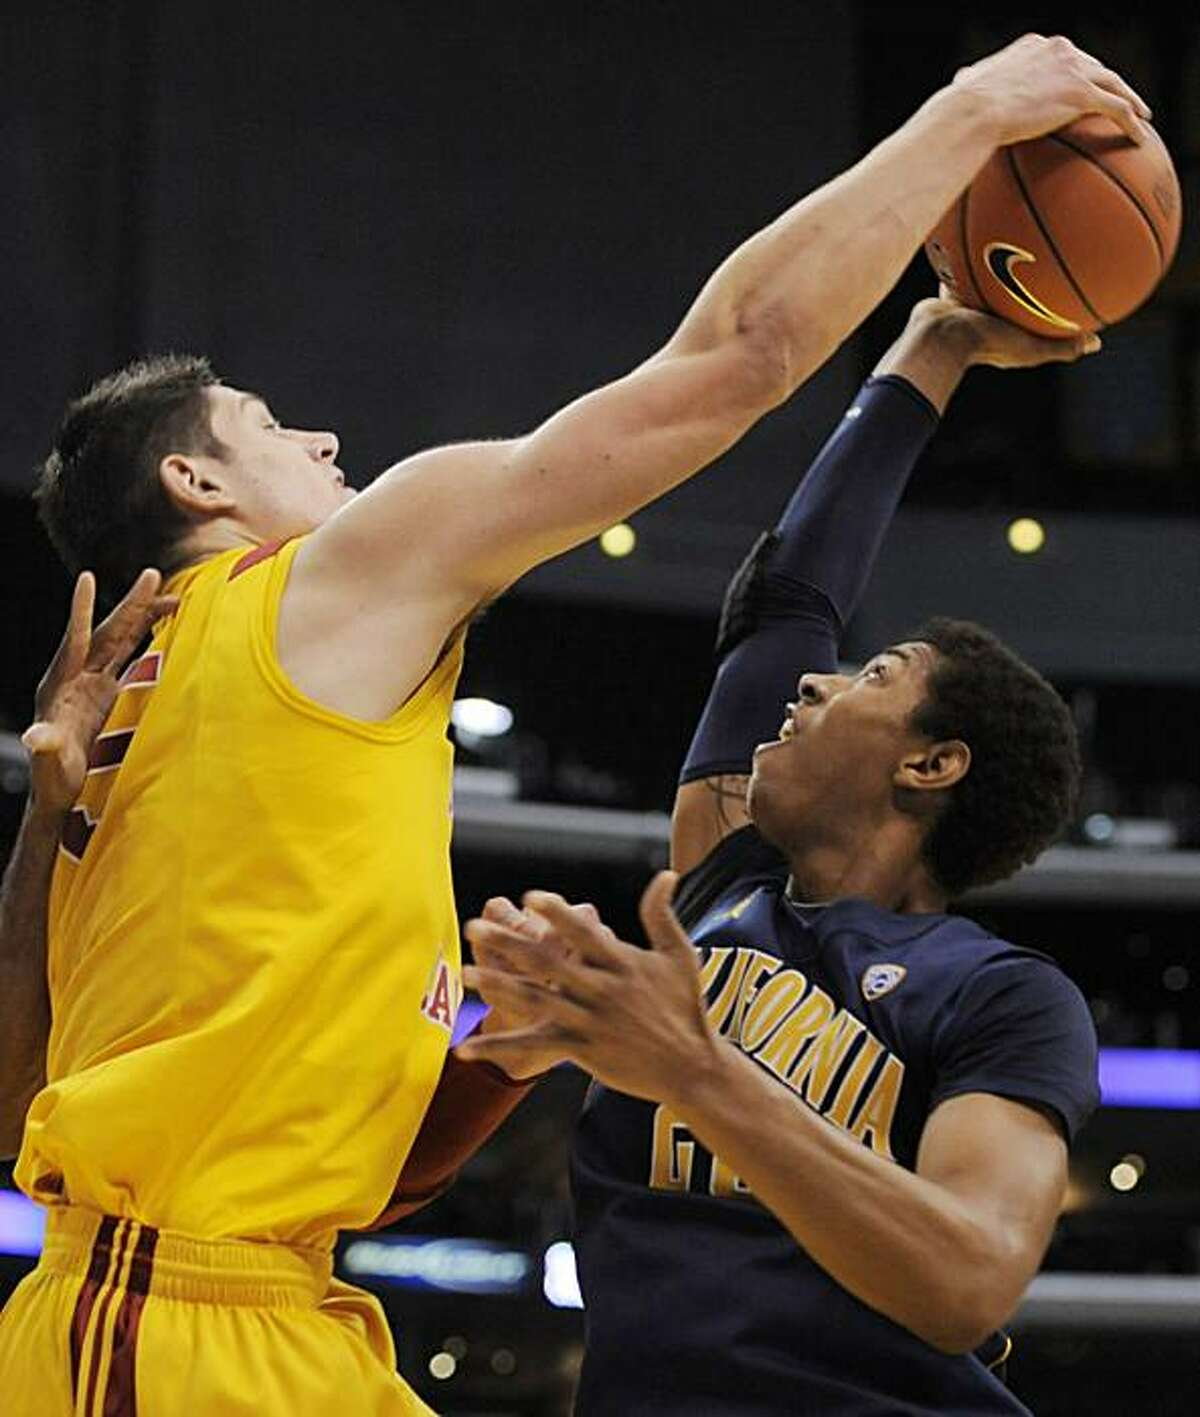 Southern California's Nikola Vucevic, left, blocks a shot by California's Richard Solomon during the second half of an NCAA college basketball game in the Pacific-10 tournament, Thursday, March 10, 2011, in Los Angeles. Southern California won the game, 70-56.